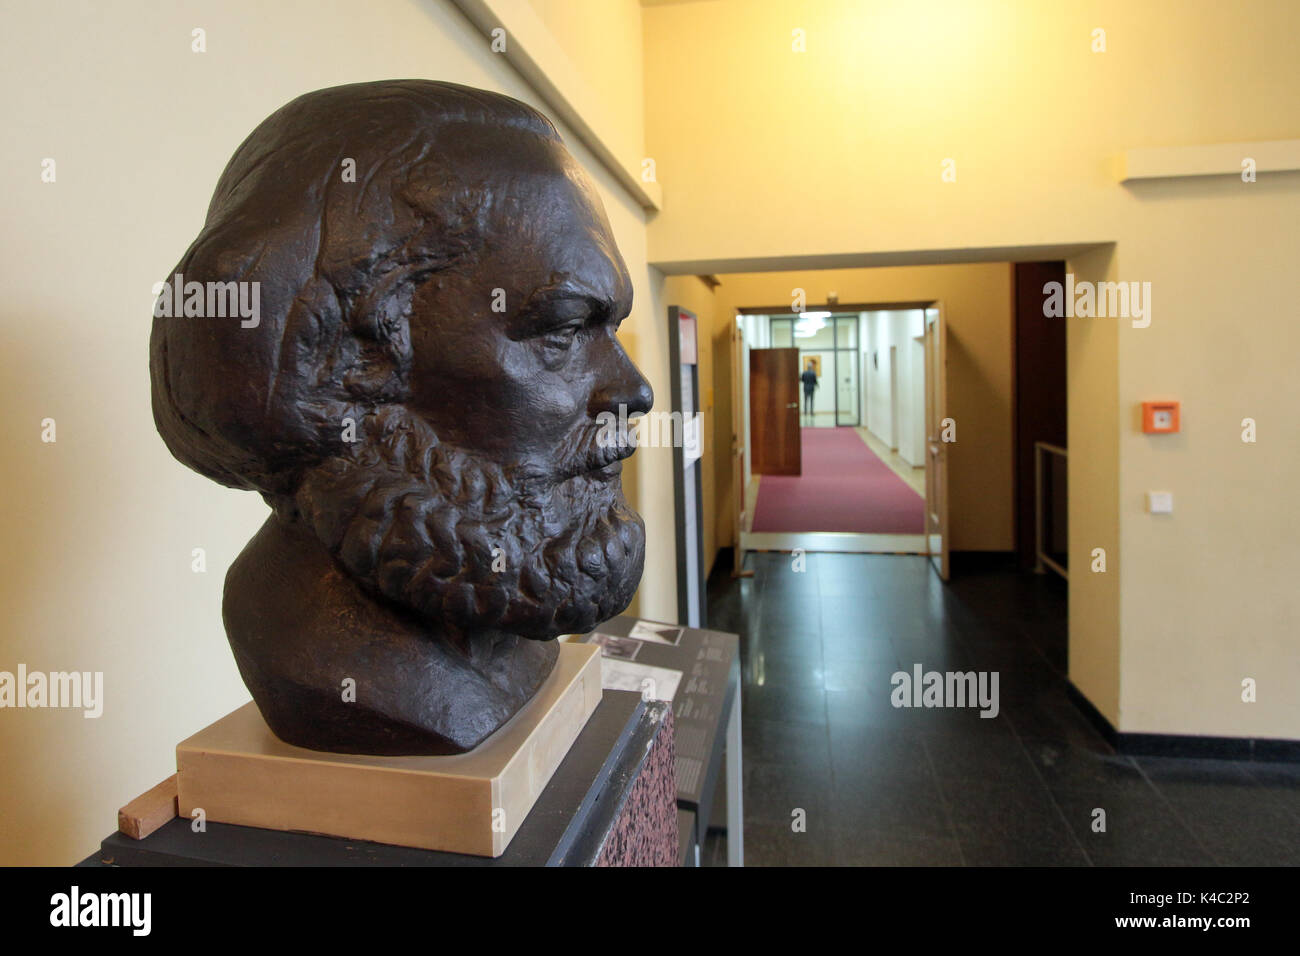 Sculpture Of Karl Marx In The Hallway Of Former Gdr S Ministry Of State Security - Stock Image